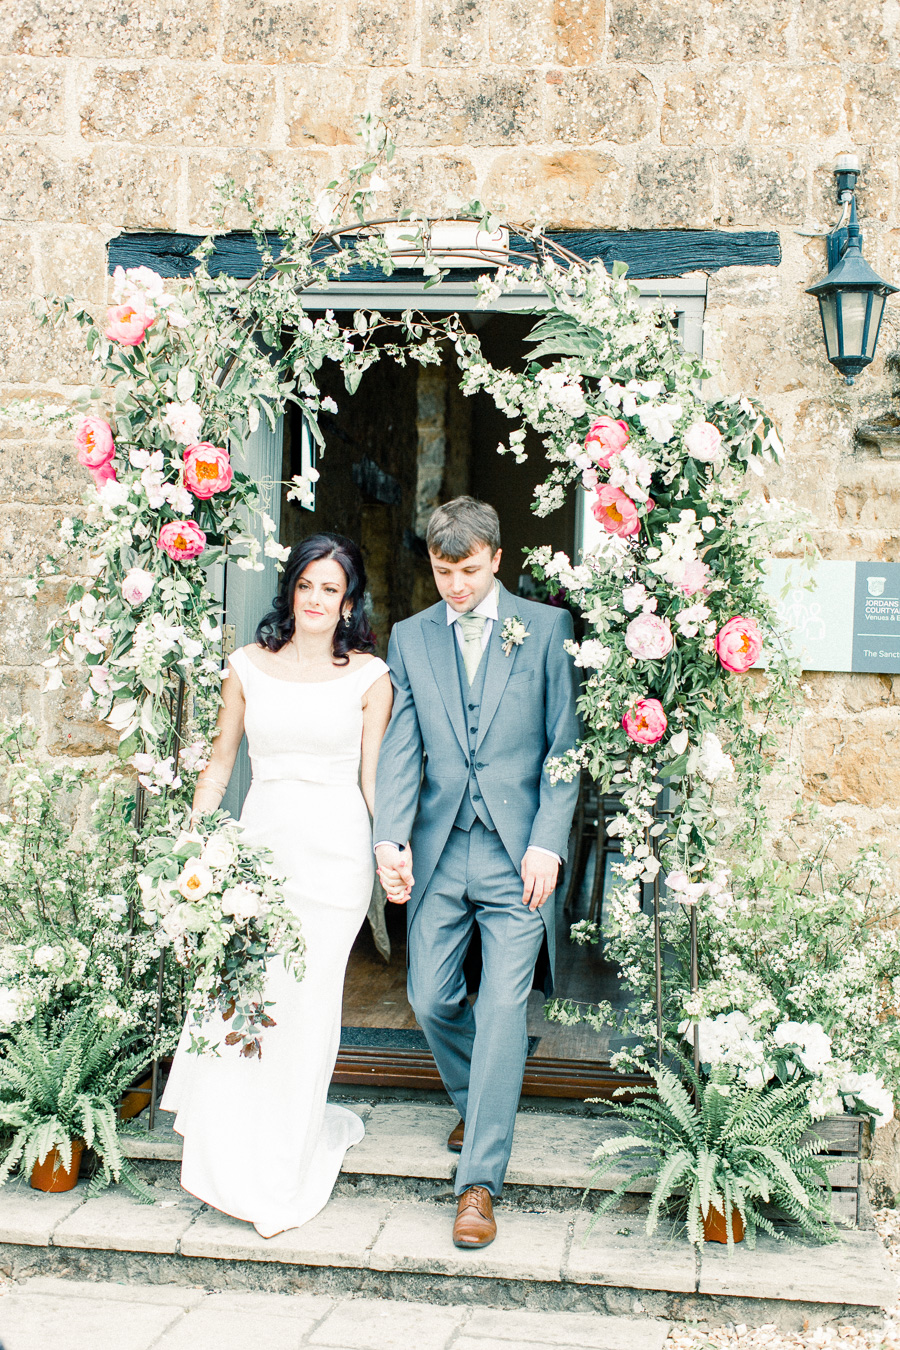 Jordans Courtyard rustic wedding styling ideas with images by Liz Baker Photography (20)